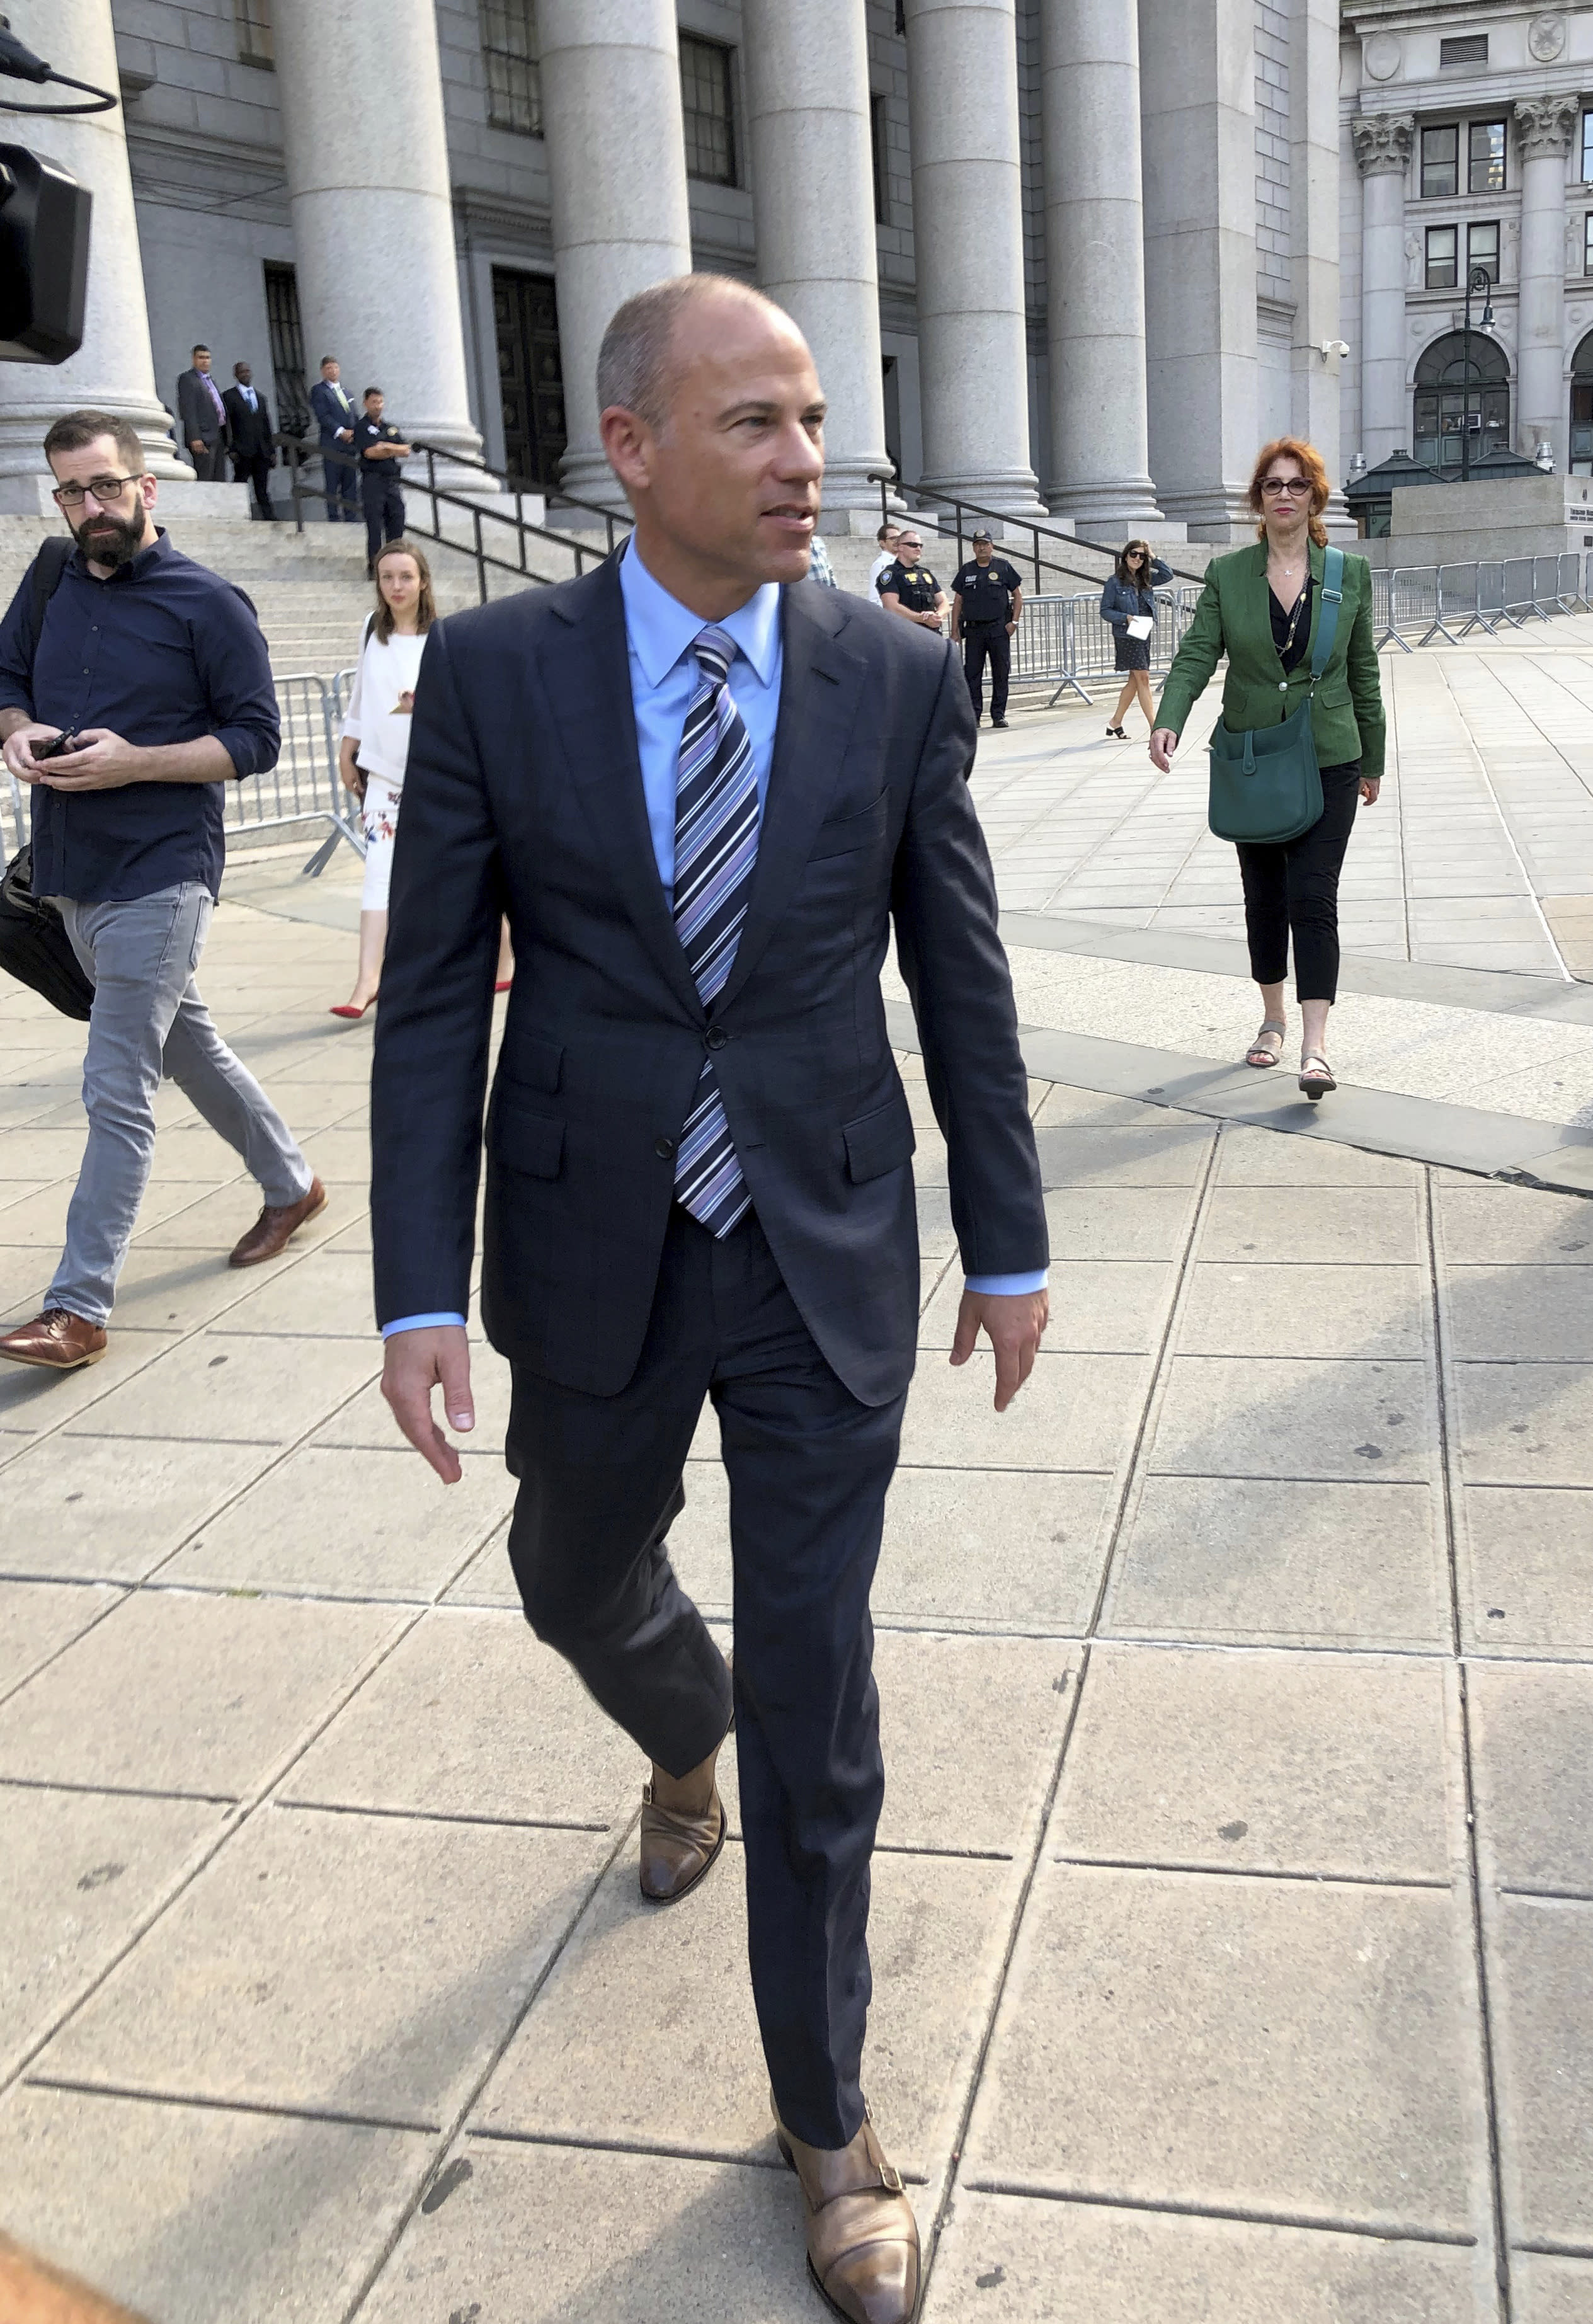 Attorney Michael Avenatti walks past the federal courthouse in New York after making an appearance related to the extortion charges against him, Thursday, Aug. 22, 2019. (AP Photo/Larry Neumeister)